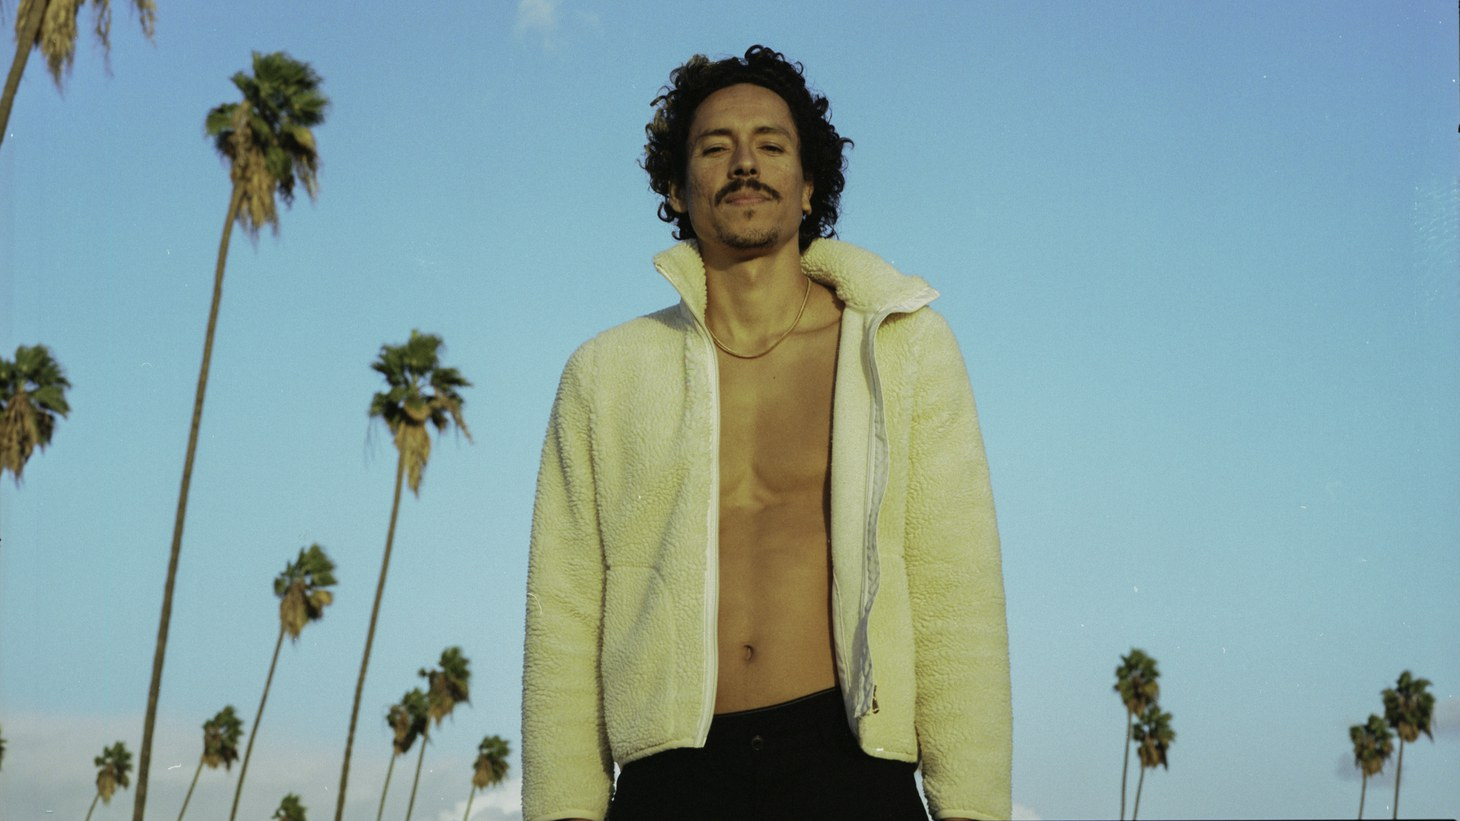 """We know Bardo as the frontman of LA outfit Chicano Batman, but now he's stepped out with his own debut solo album, """"Everywhere Reminds Me Of Space."""""""